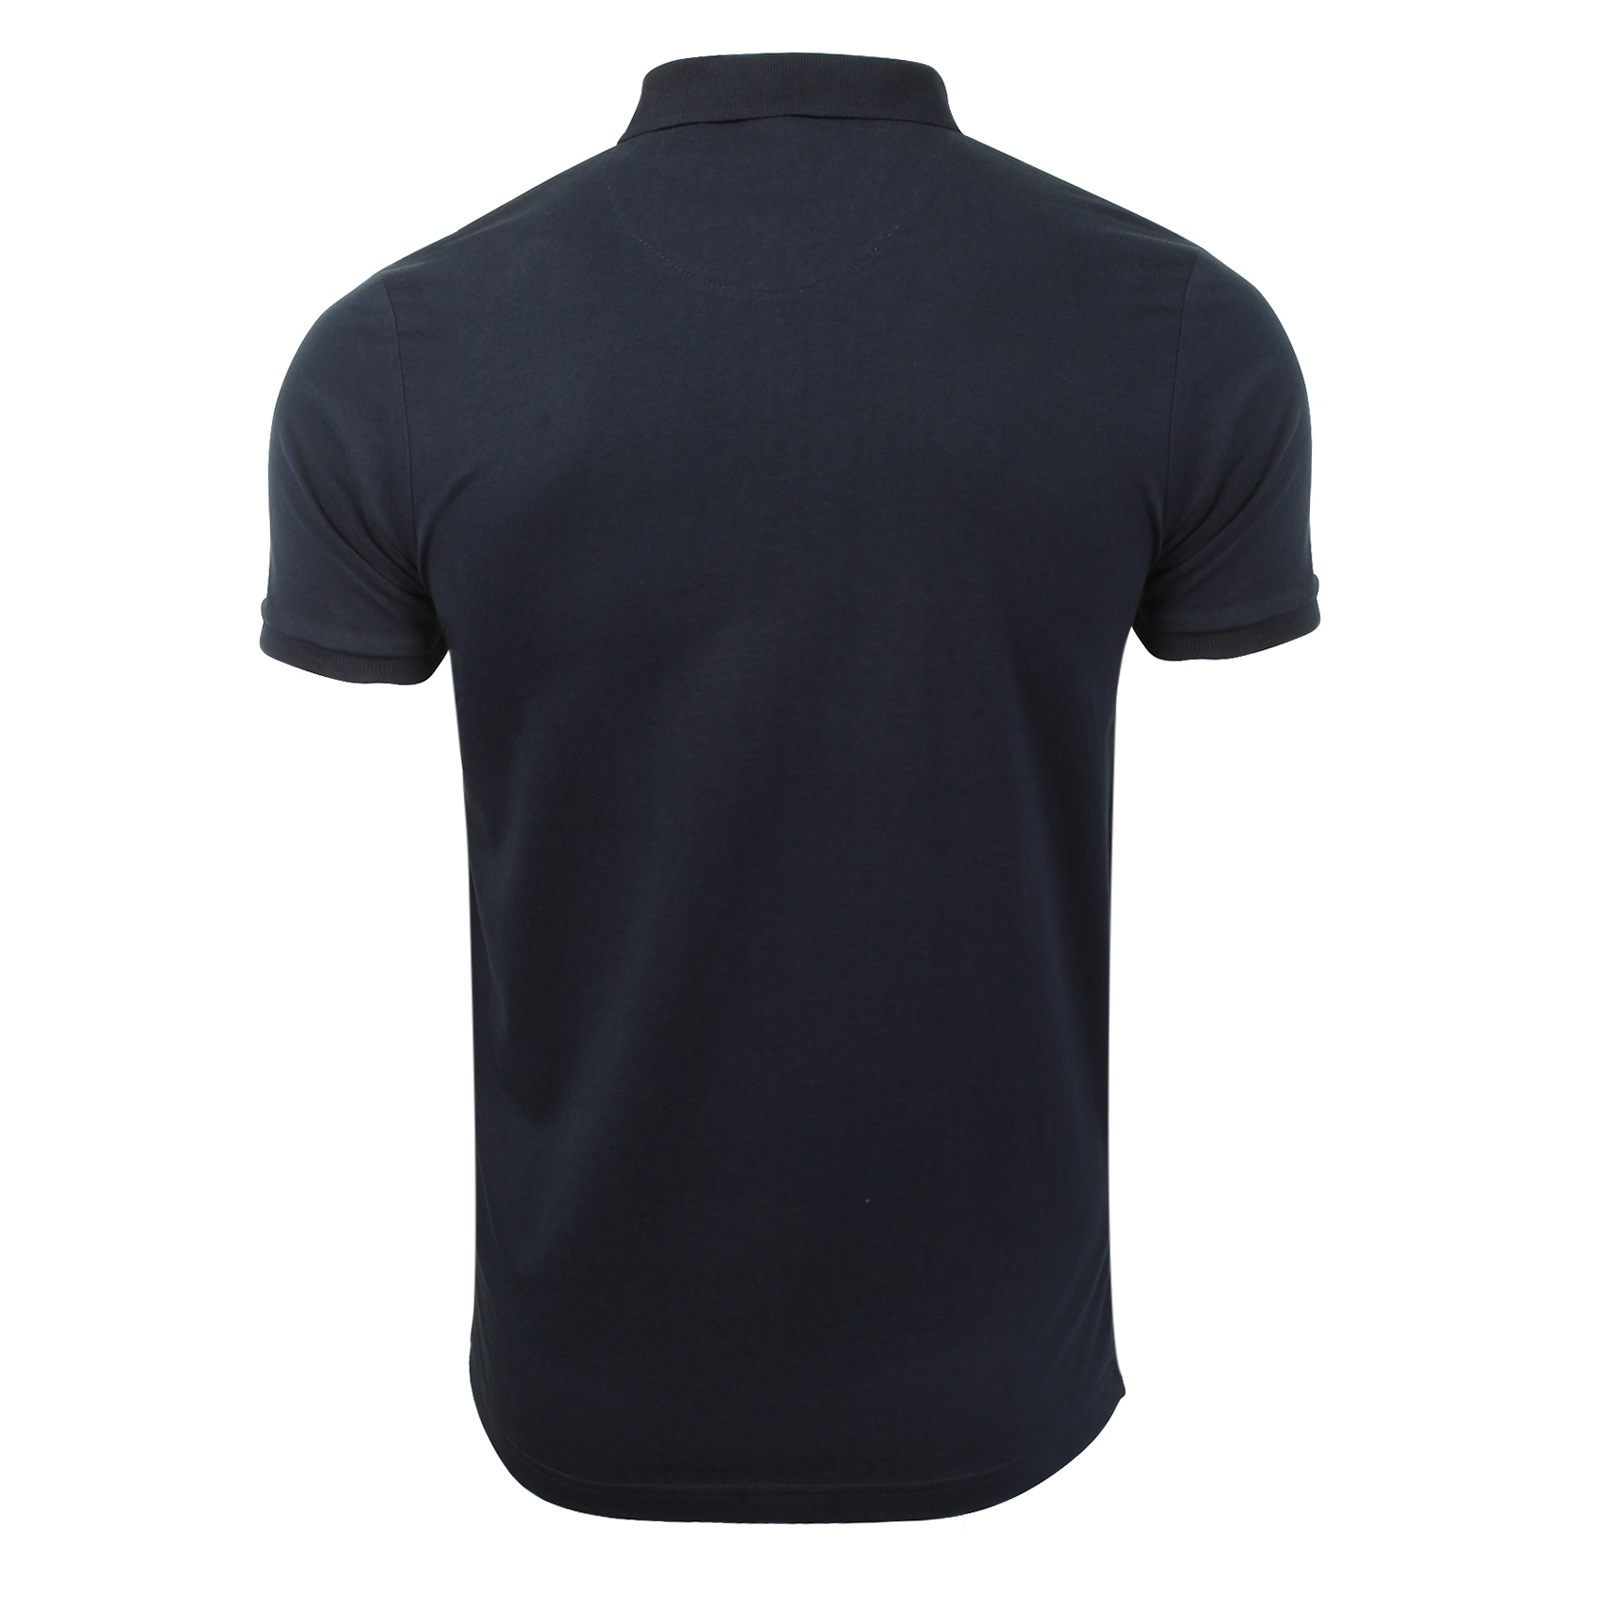 Mens-Polo-T-Shirt-Brave-Soul-Julius-Cotton-Collared-Short-Sleeve-Casual-Top thumbnail 18